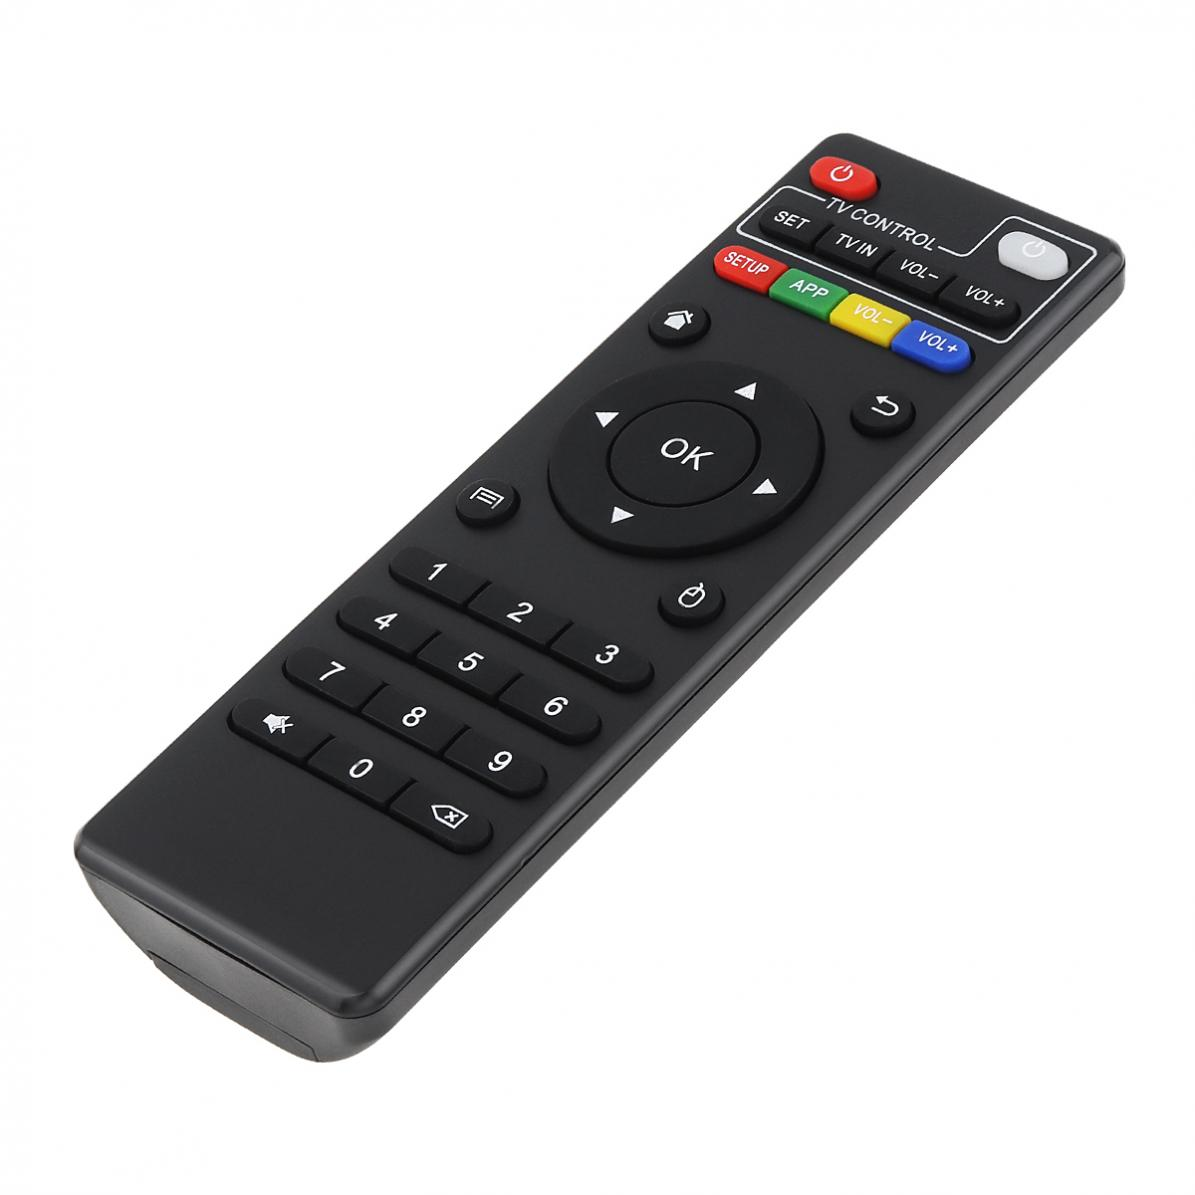 Replacement-Remote-Control-for-Android-TV-Box-H96-Pro-TX3-MXQ-T95-T95X-V88 thumbnail 4